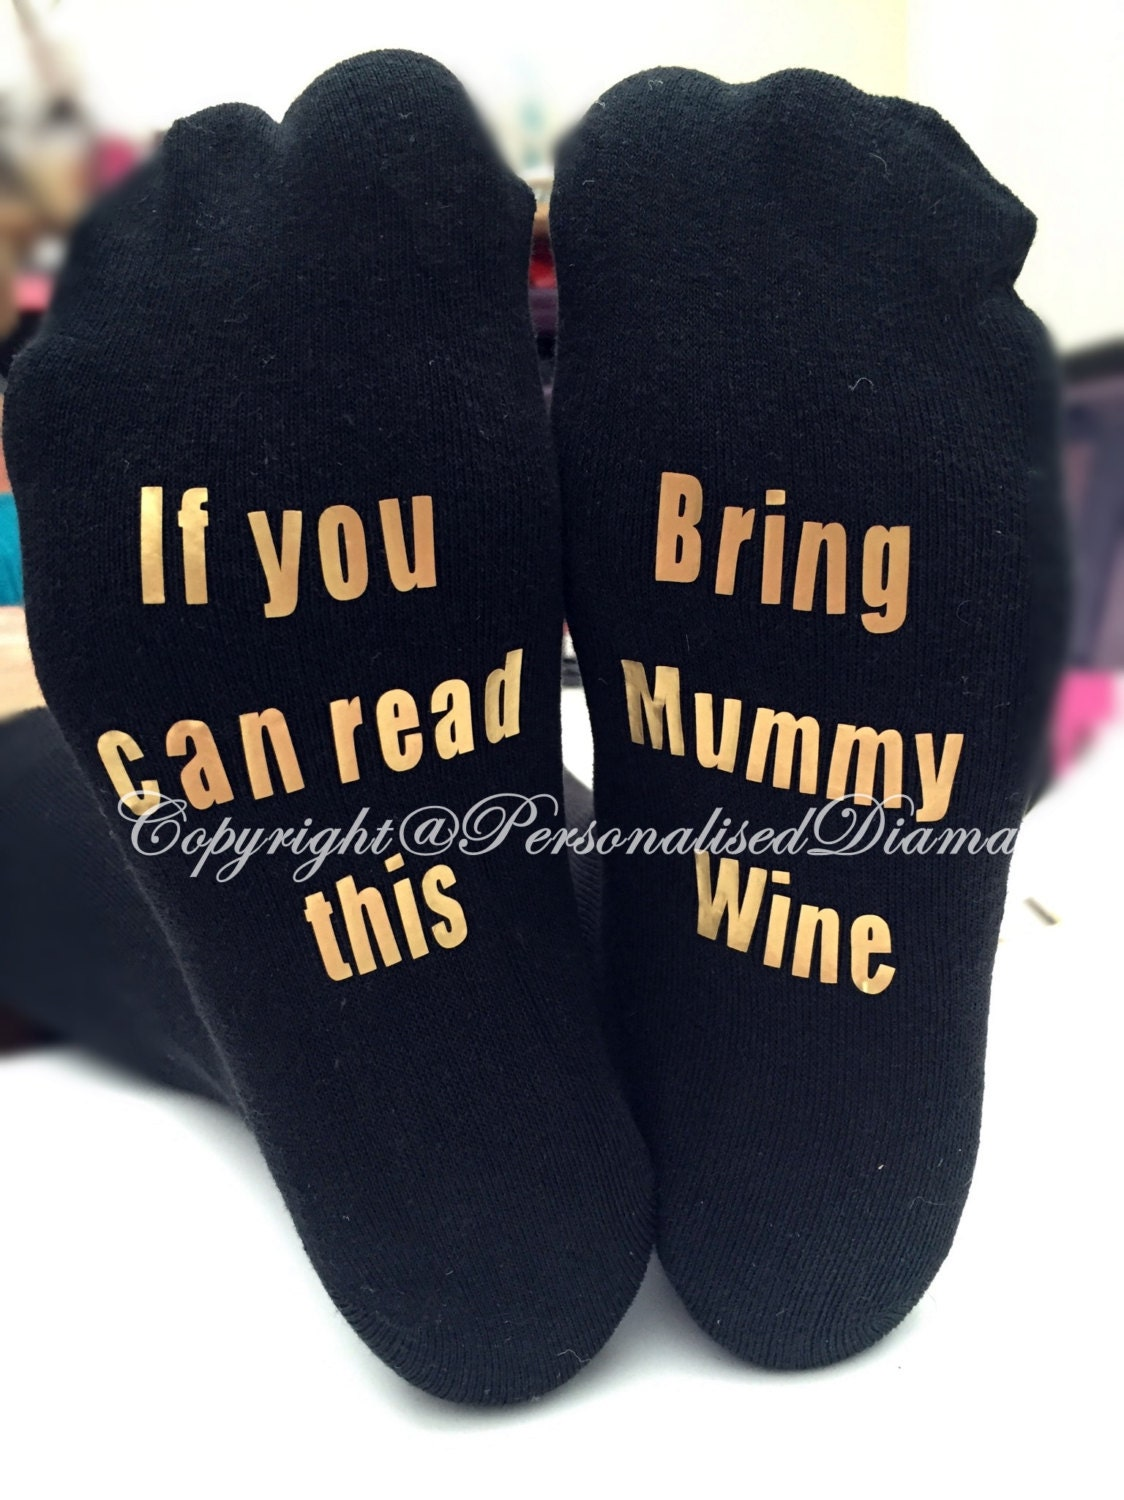 personalised sock  if you can read this bring mummy wine  if you can read this bring daddy beer  personalised prosecco  christmas socks